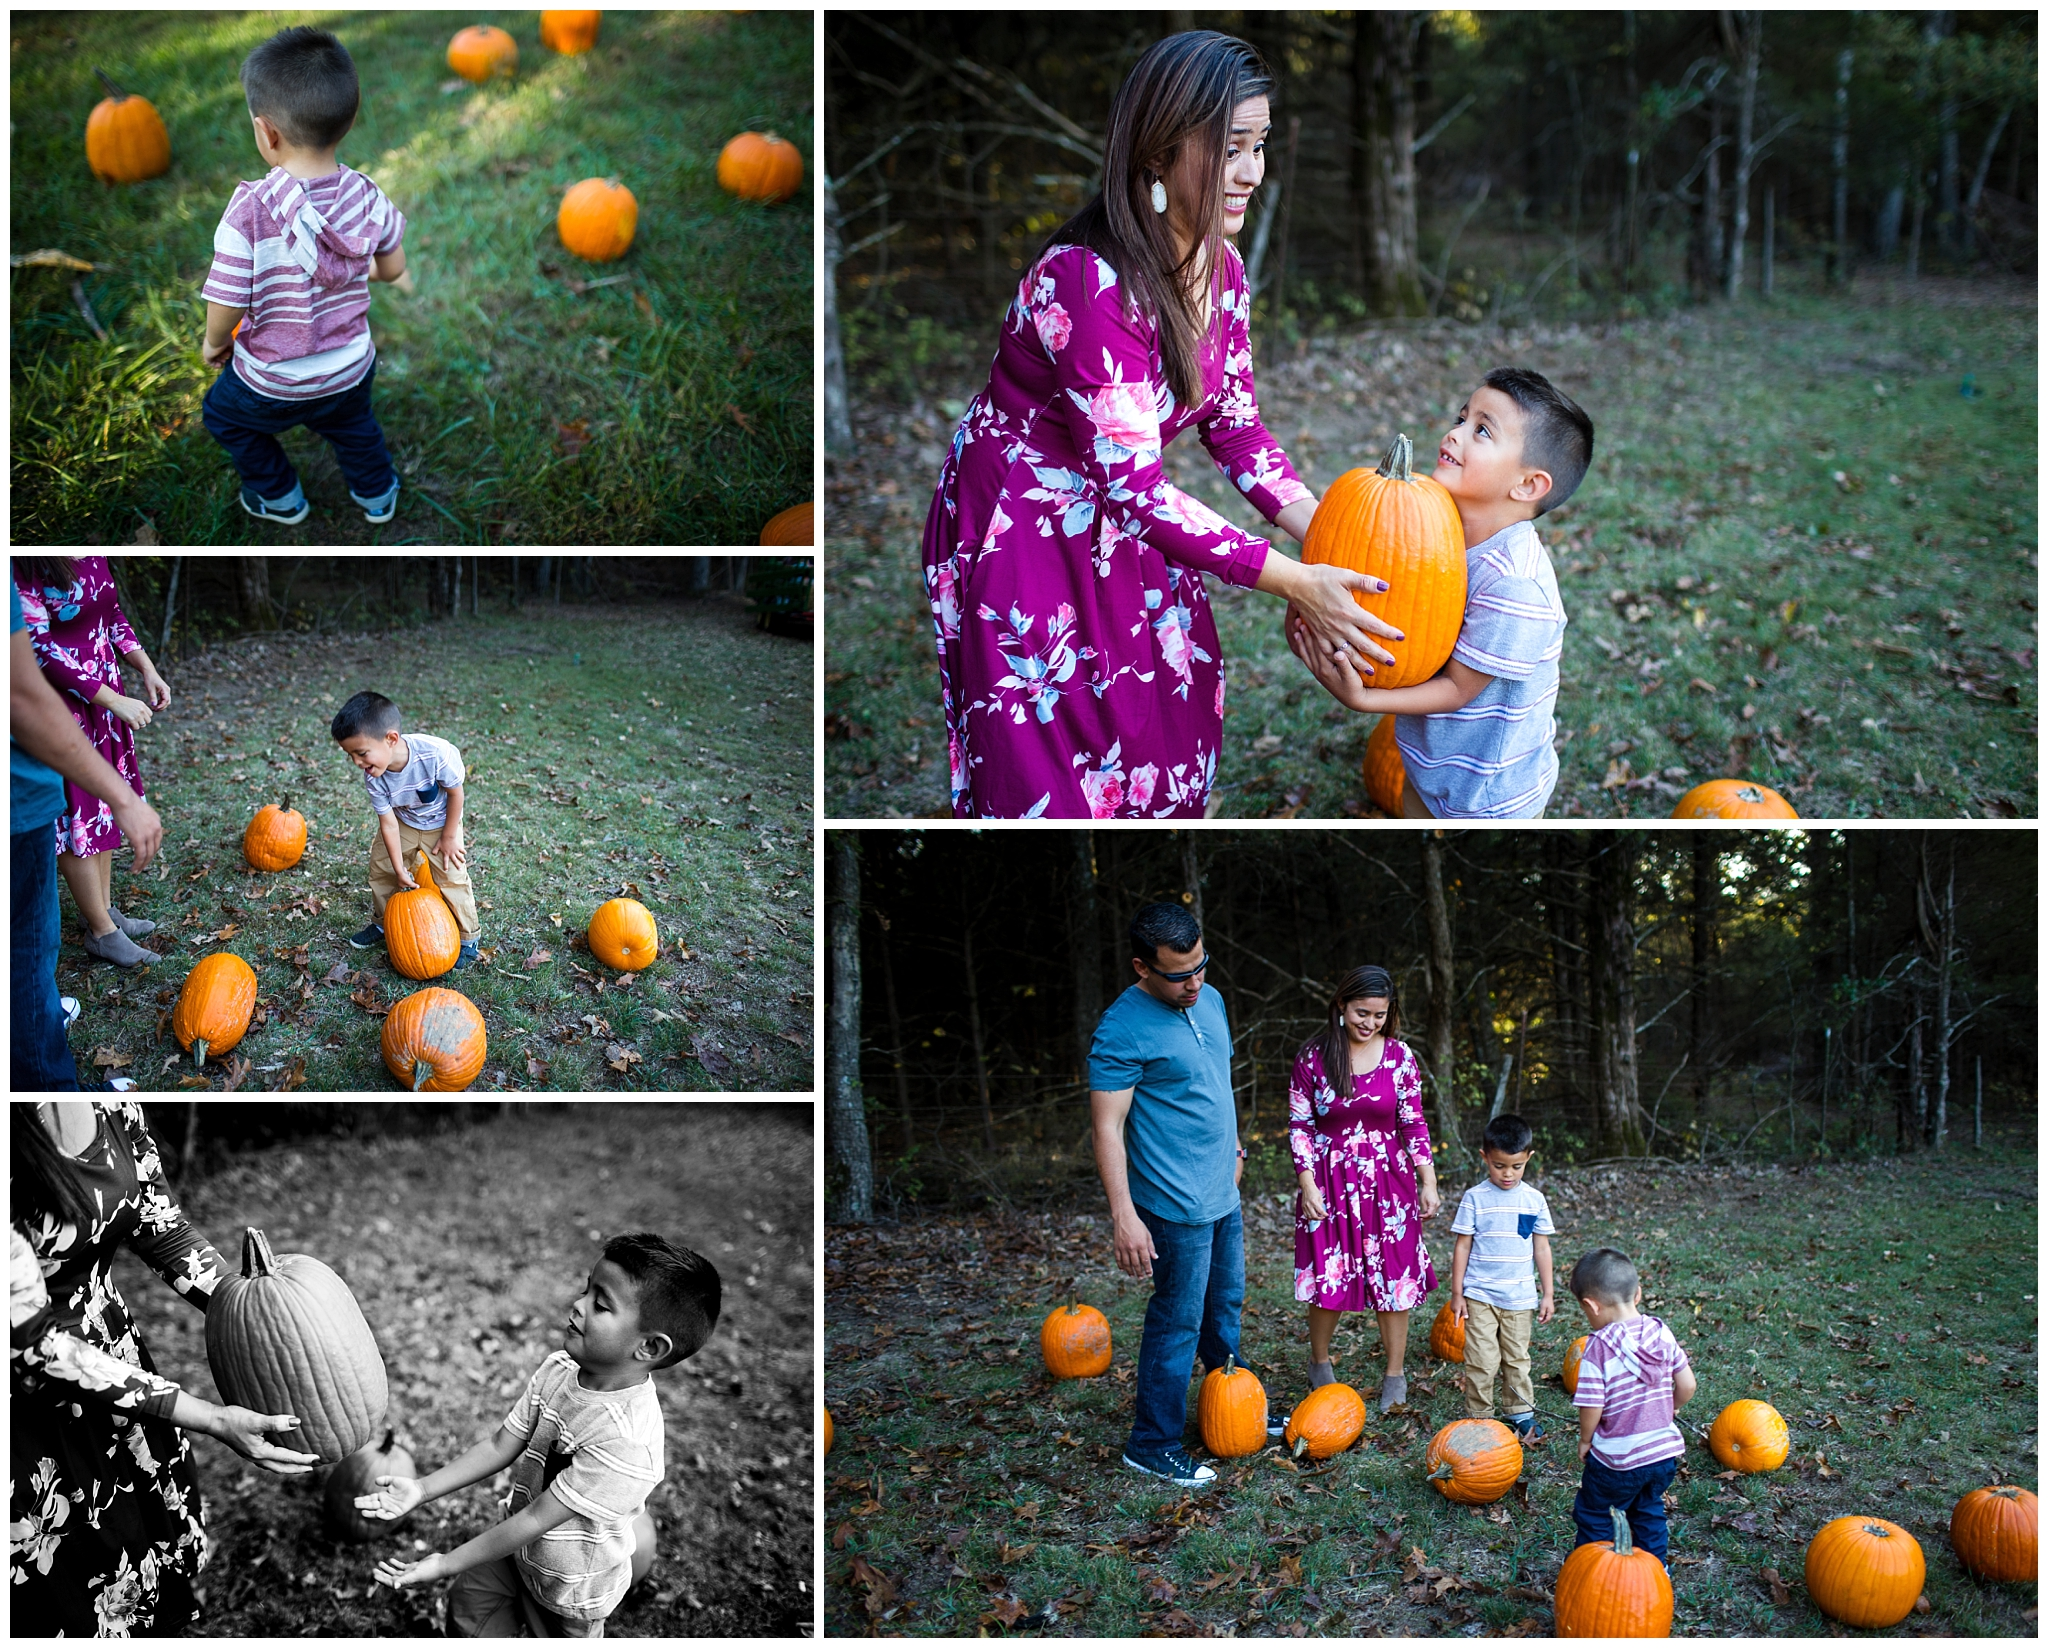 family playing at pumpkin patch documentary photography